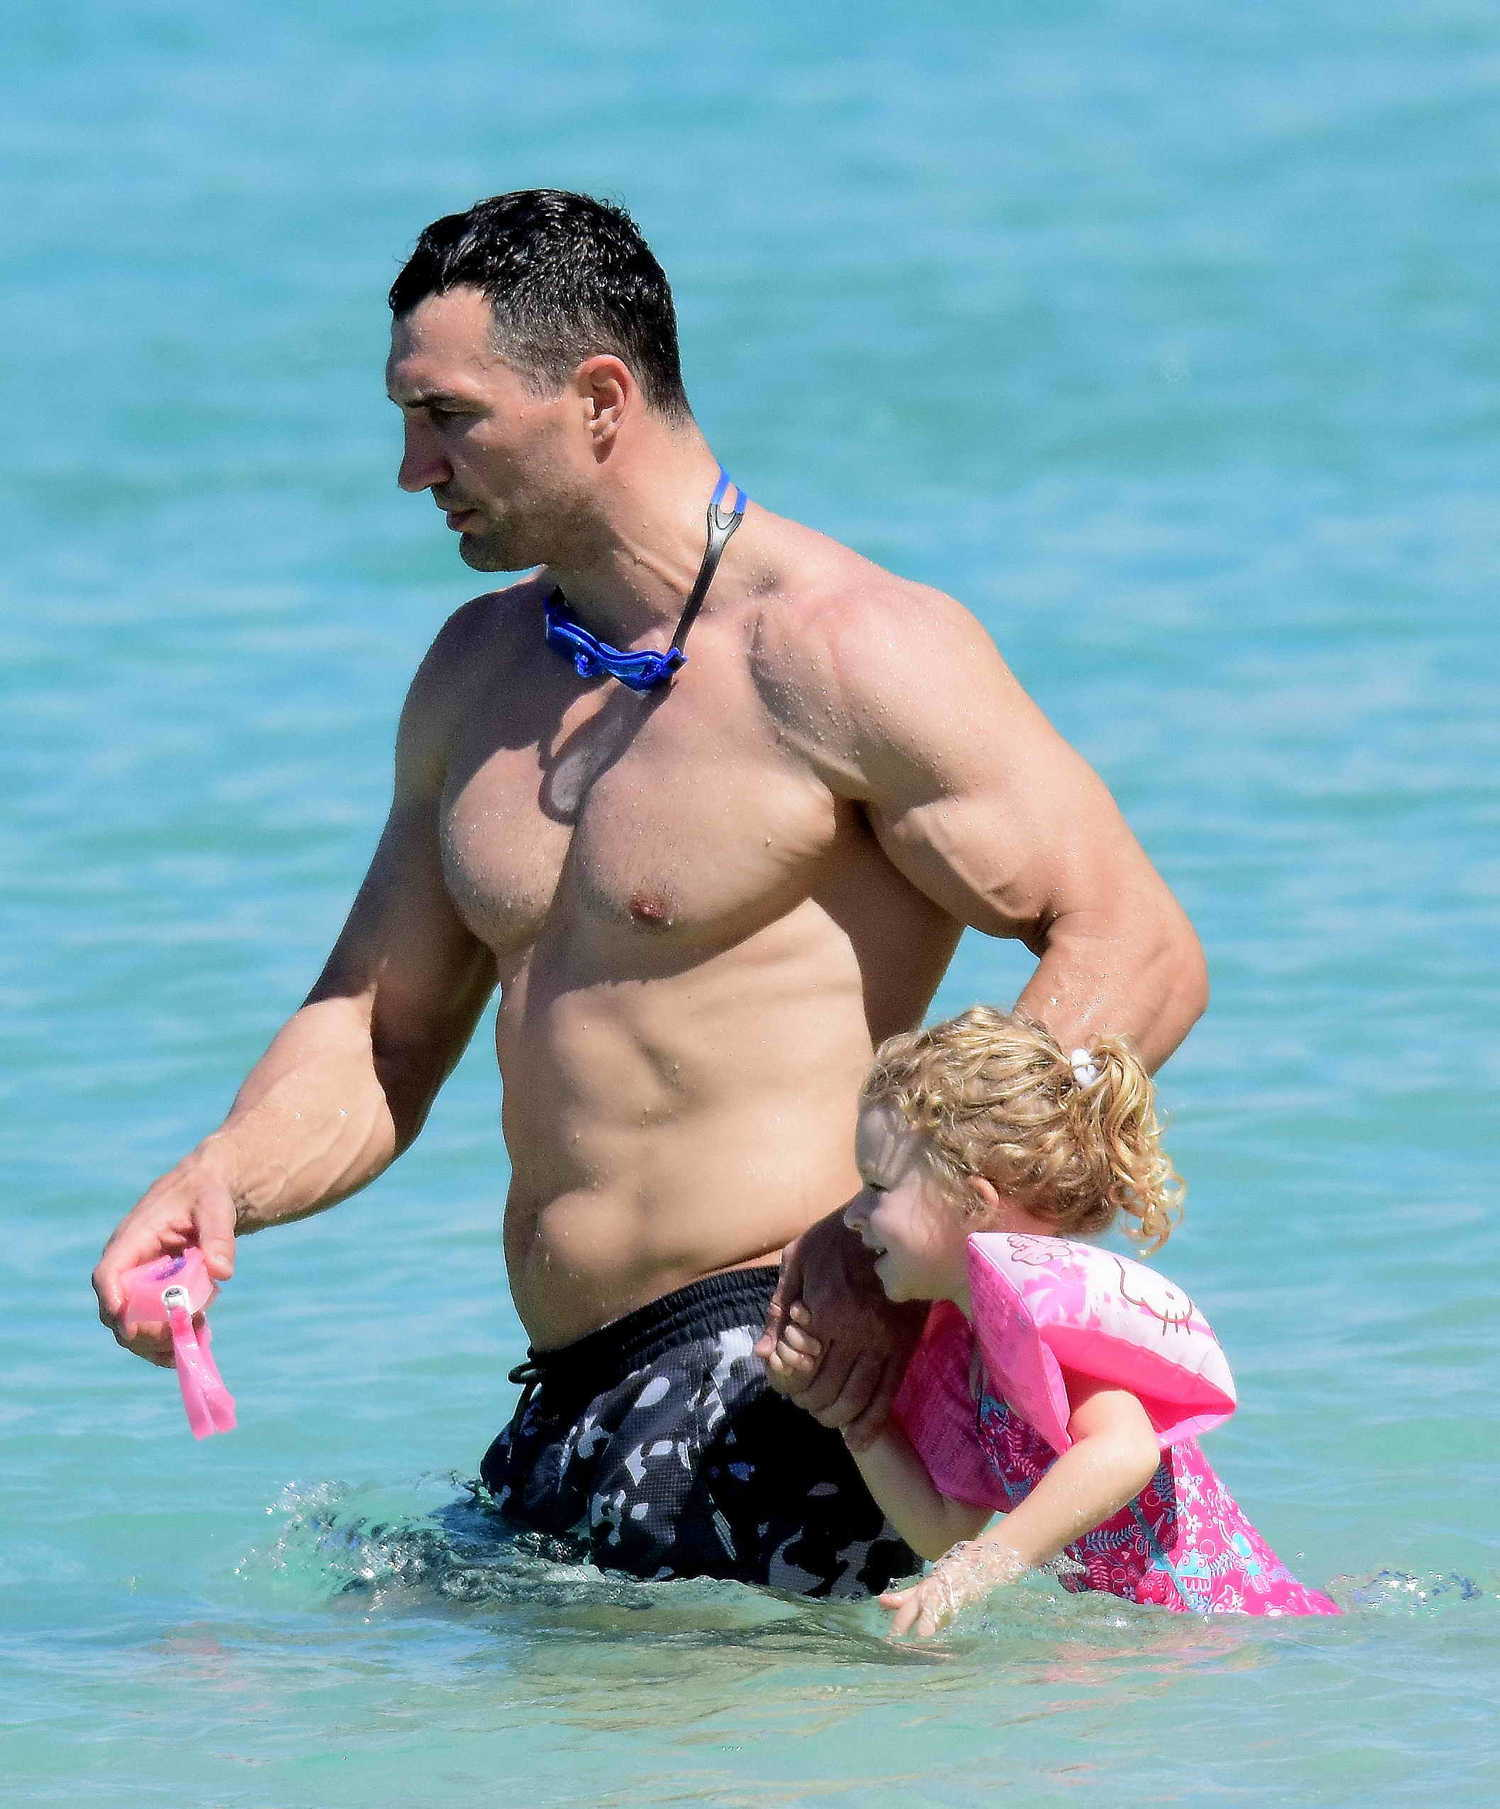 Wladimir Klitschko with Daughter on the Beach in Barbados